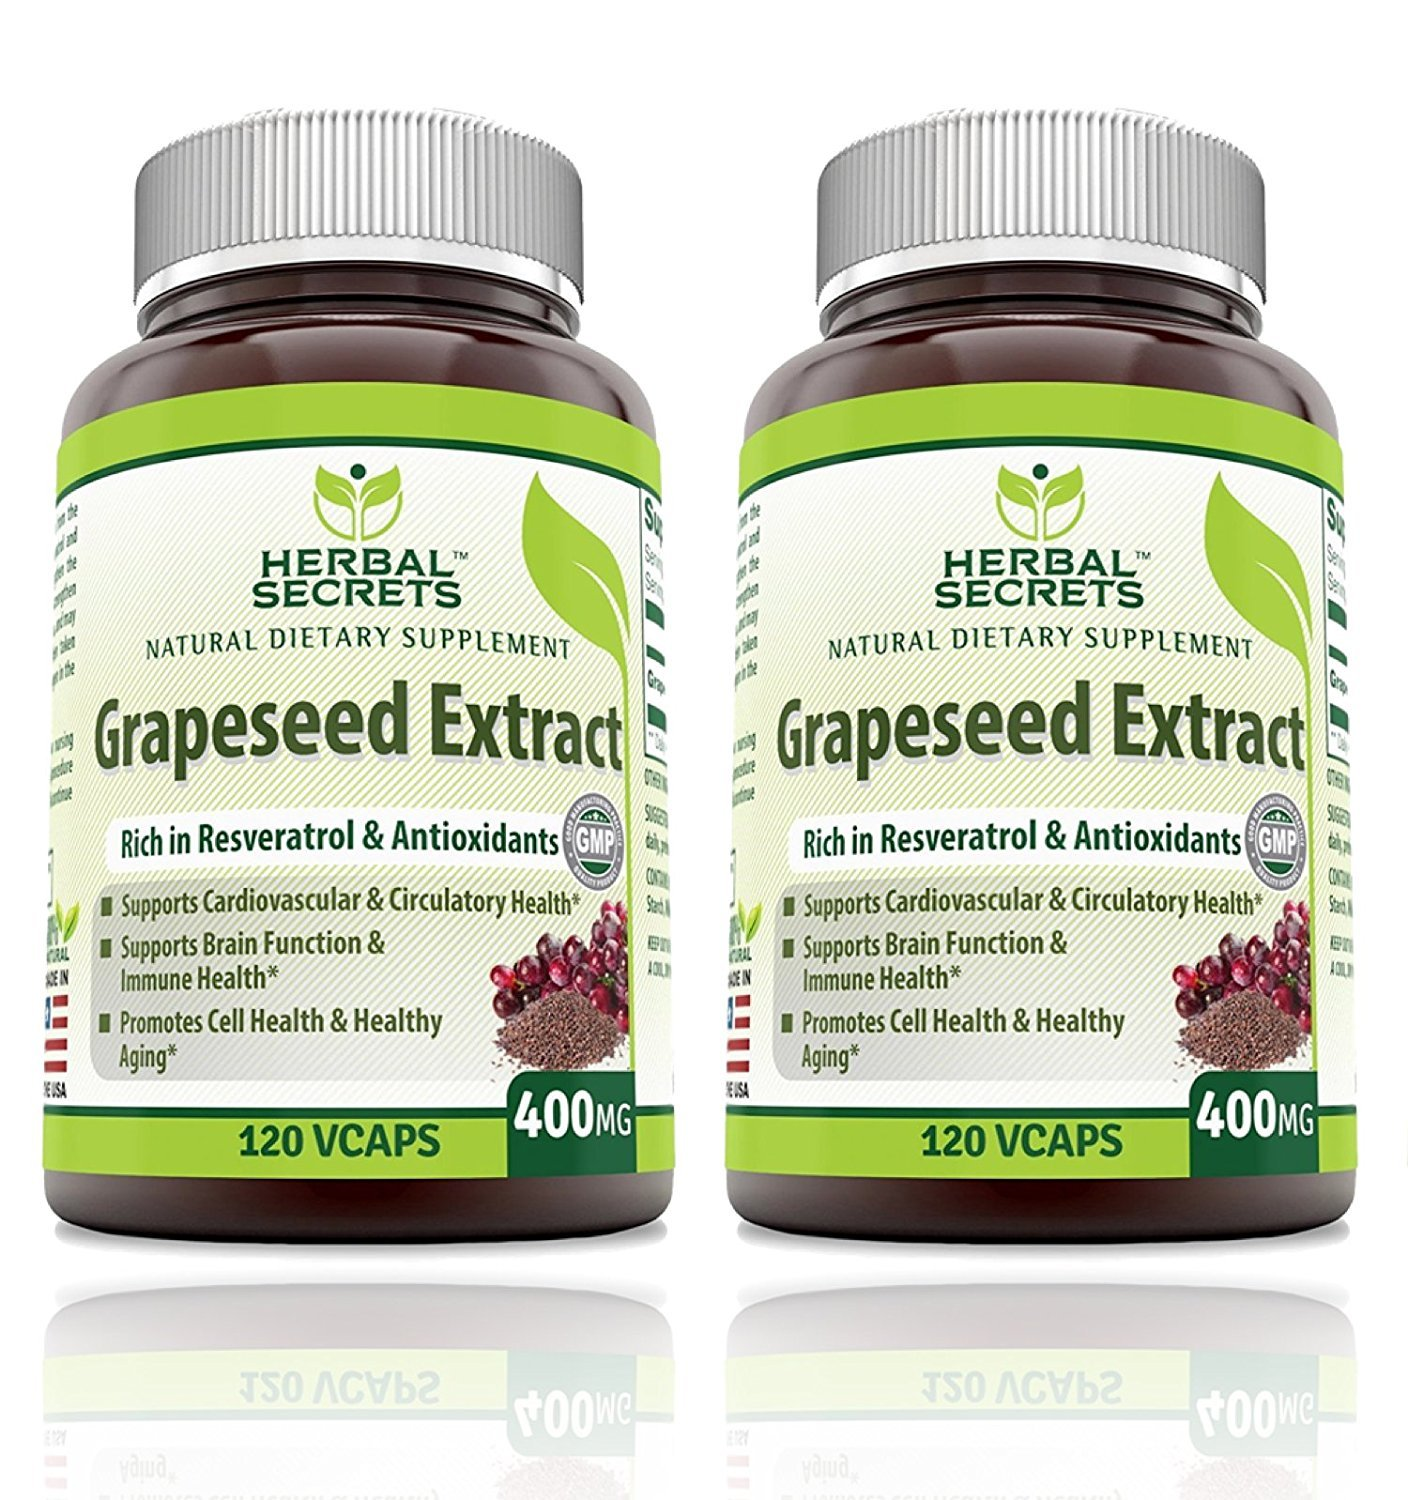 Herbal Secrets Grapeseed Extract 400mg 120 Capsules (Pack of 2) by Herbal Secrets